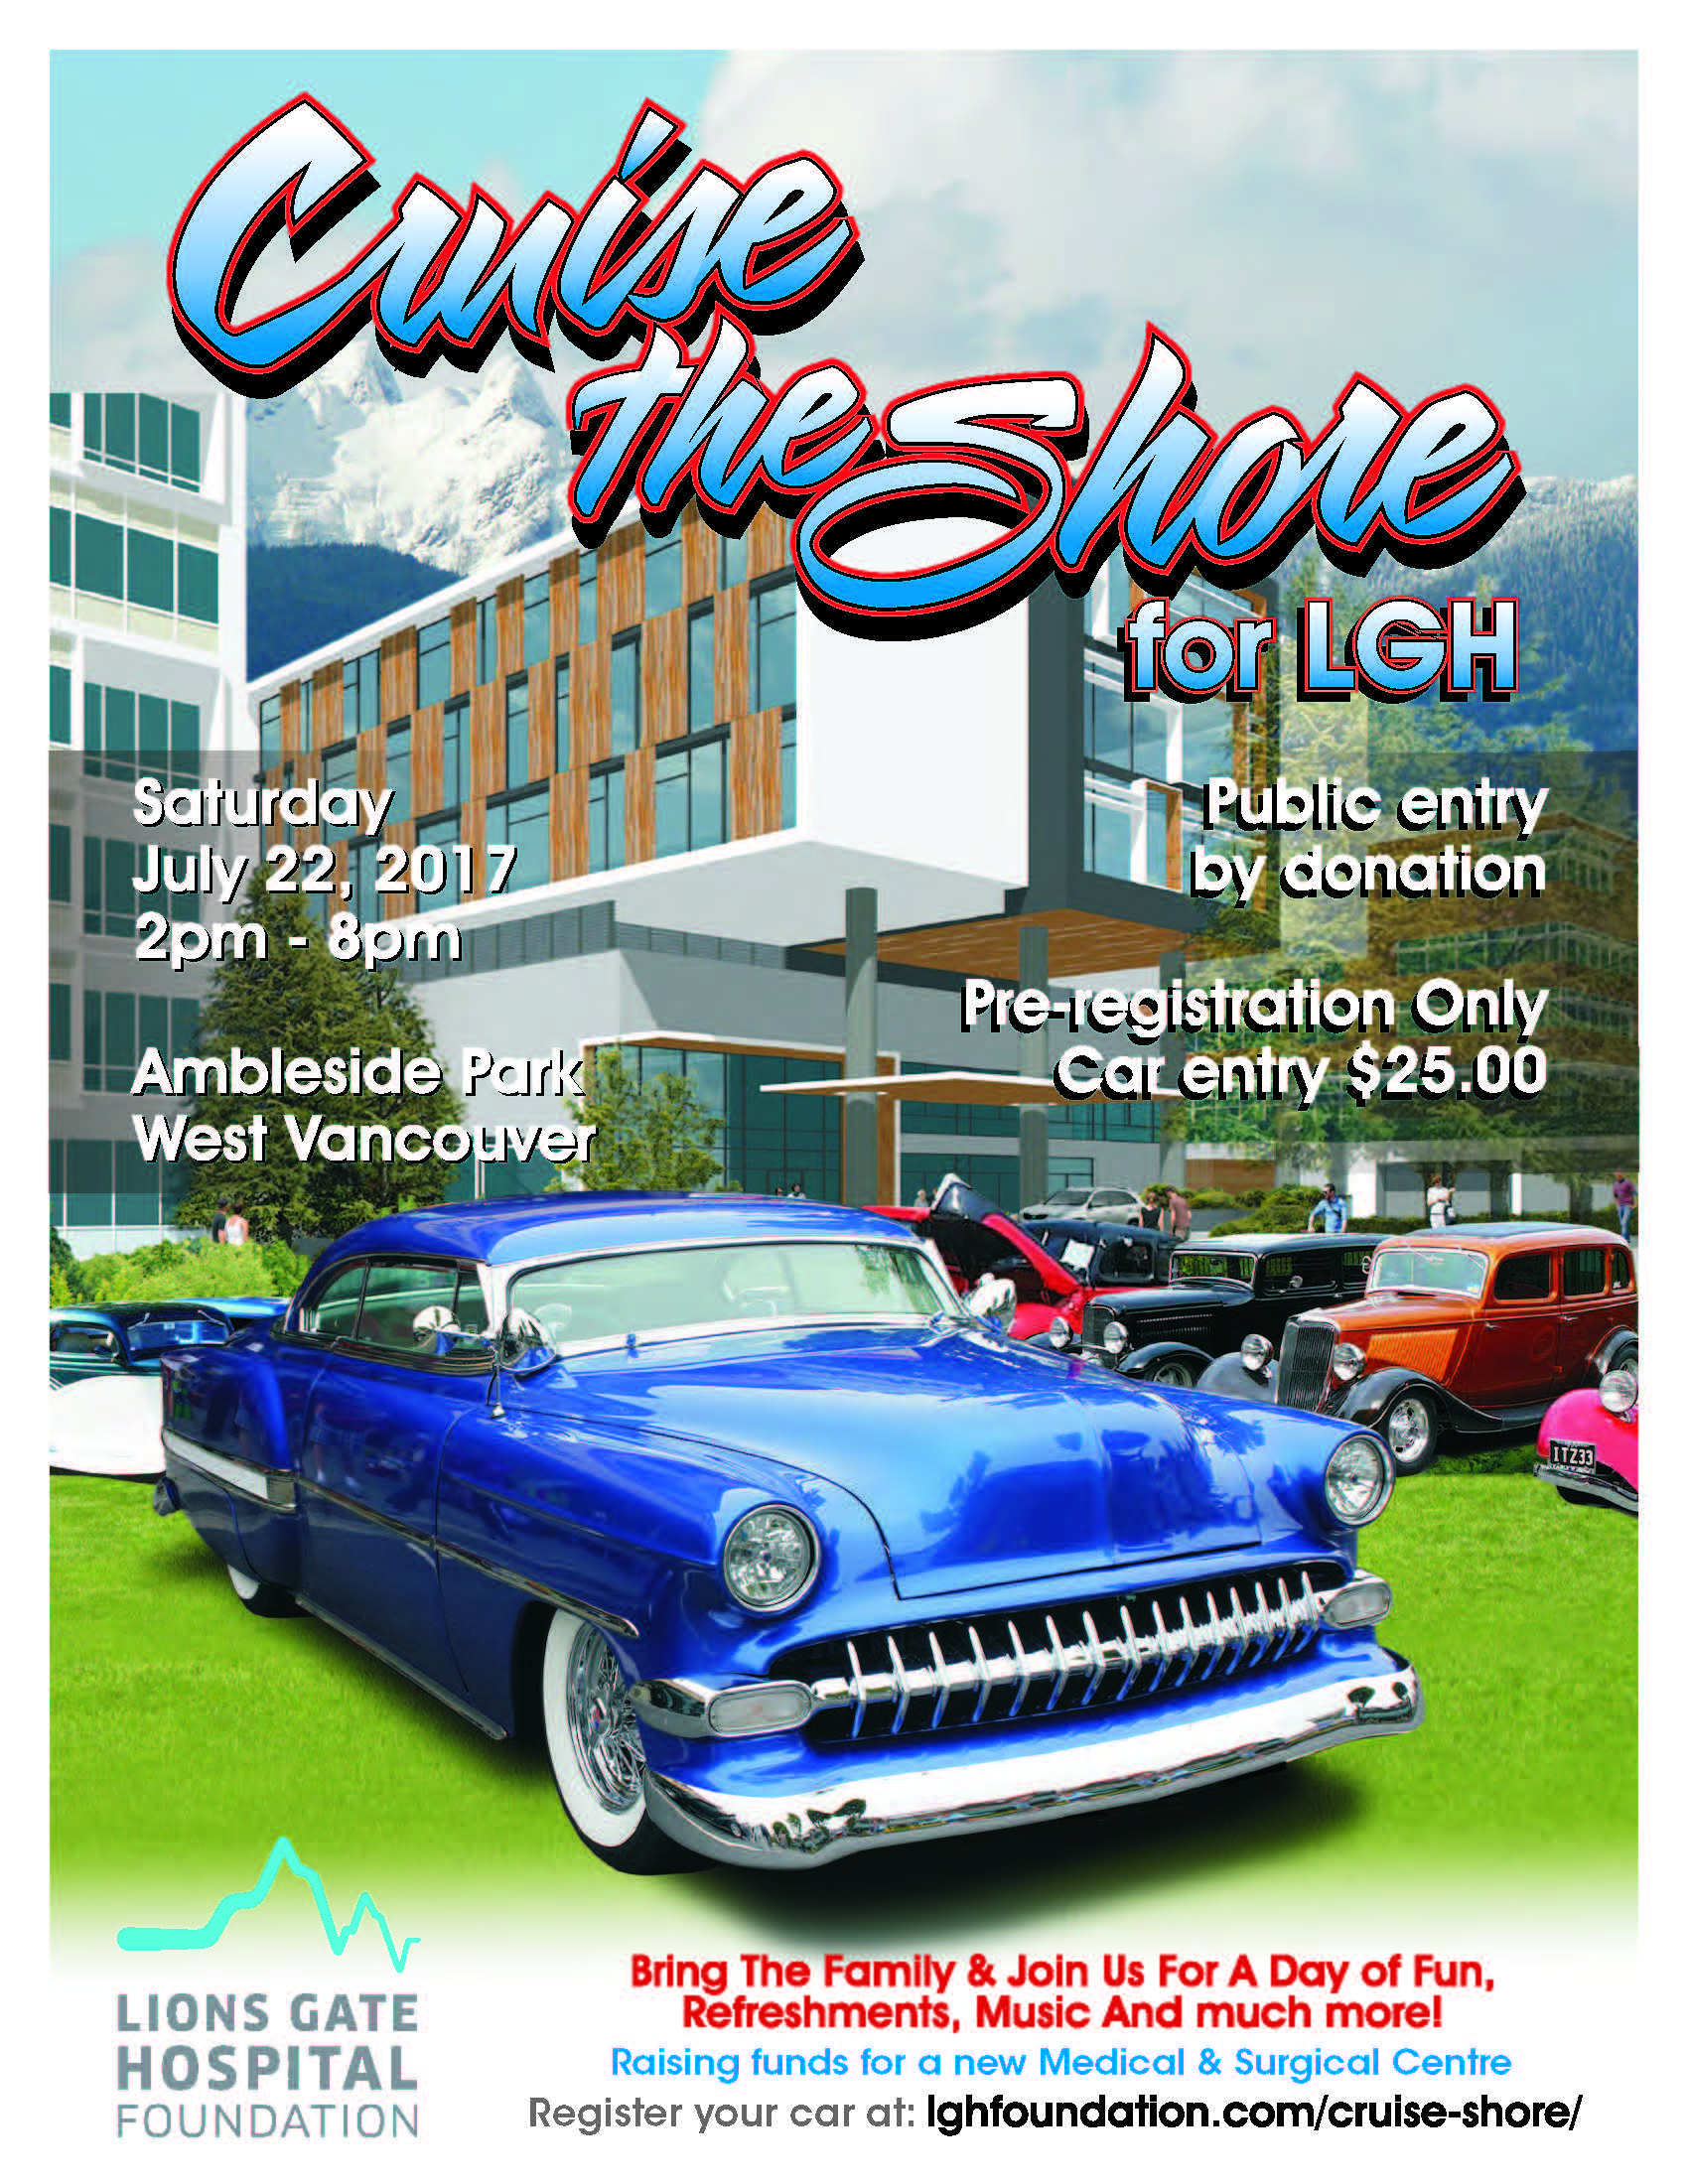 Cruise the Shore for LGH at Ambleside Park West Vancouver